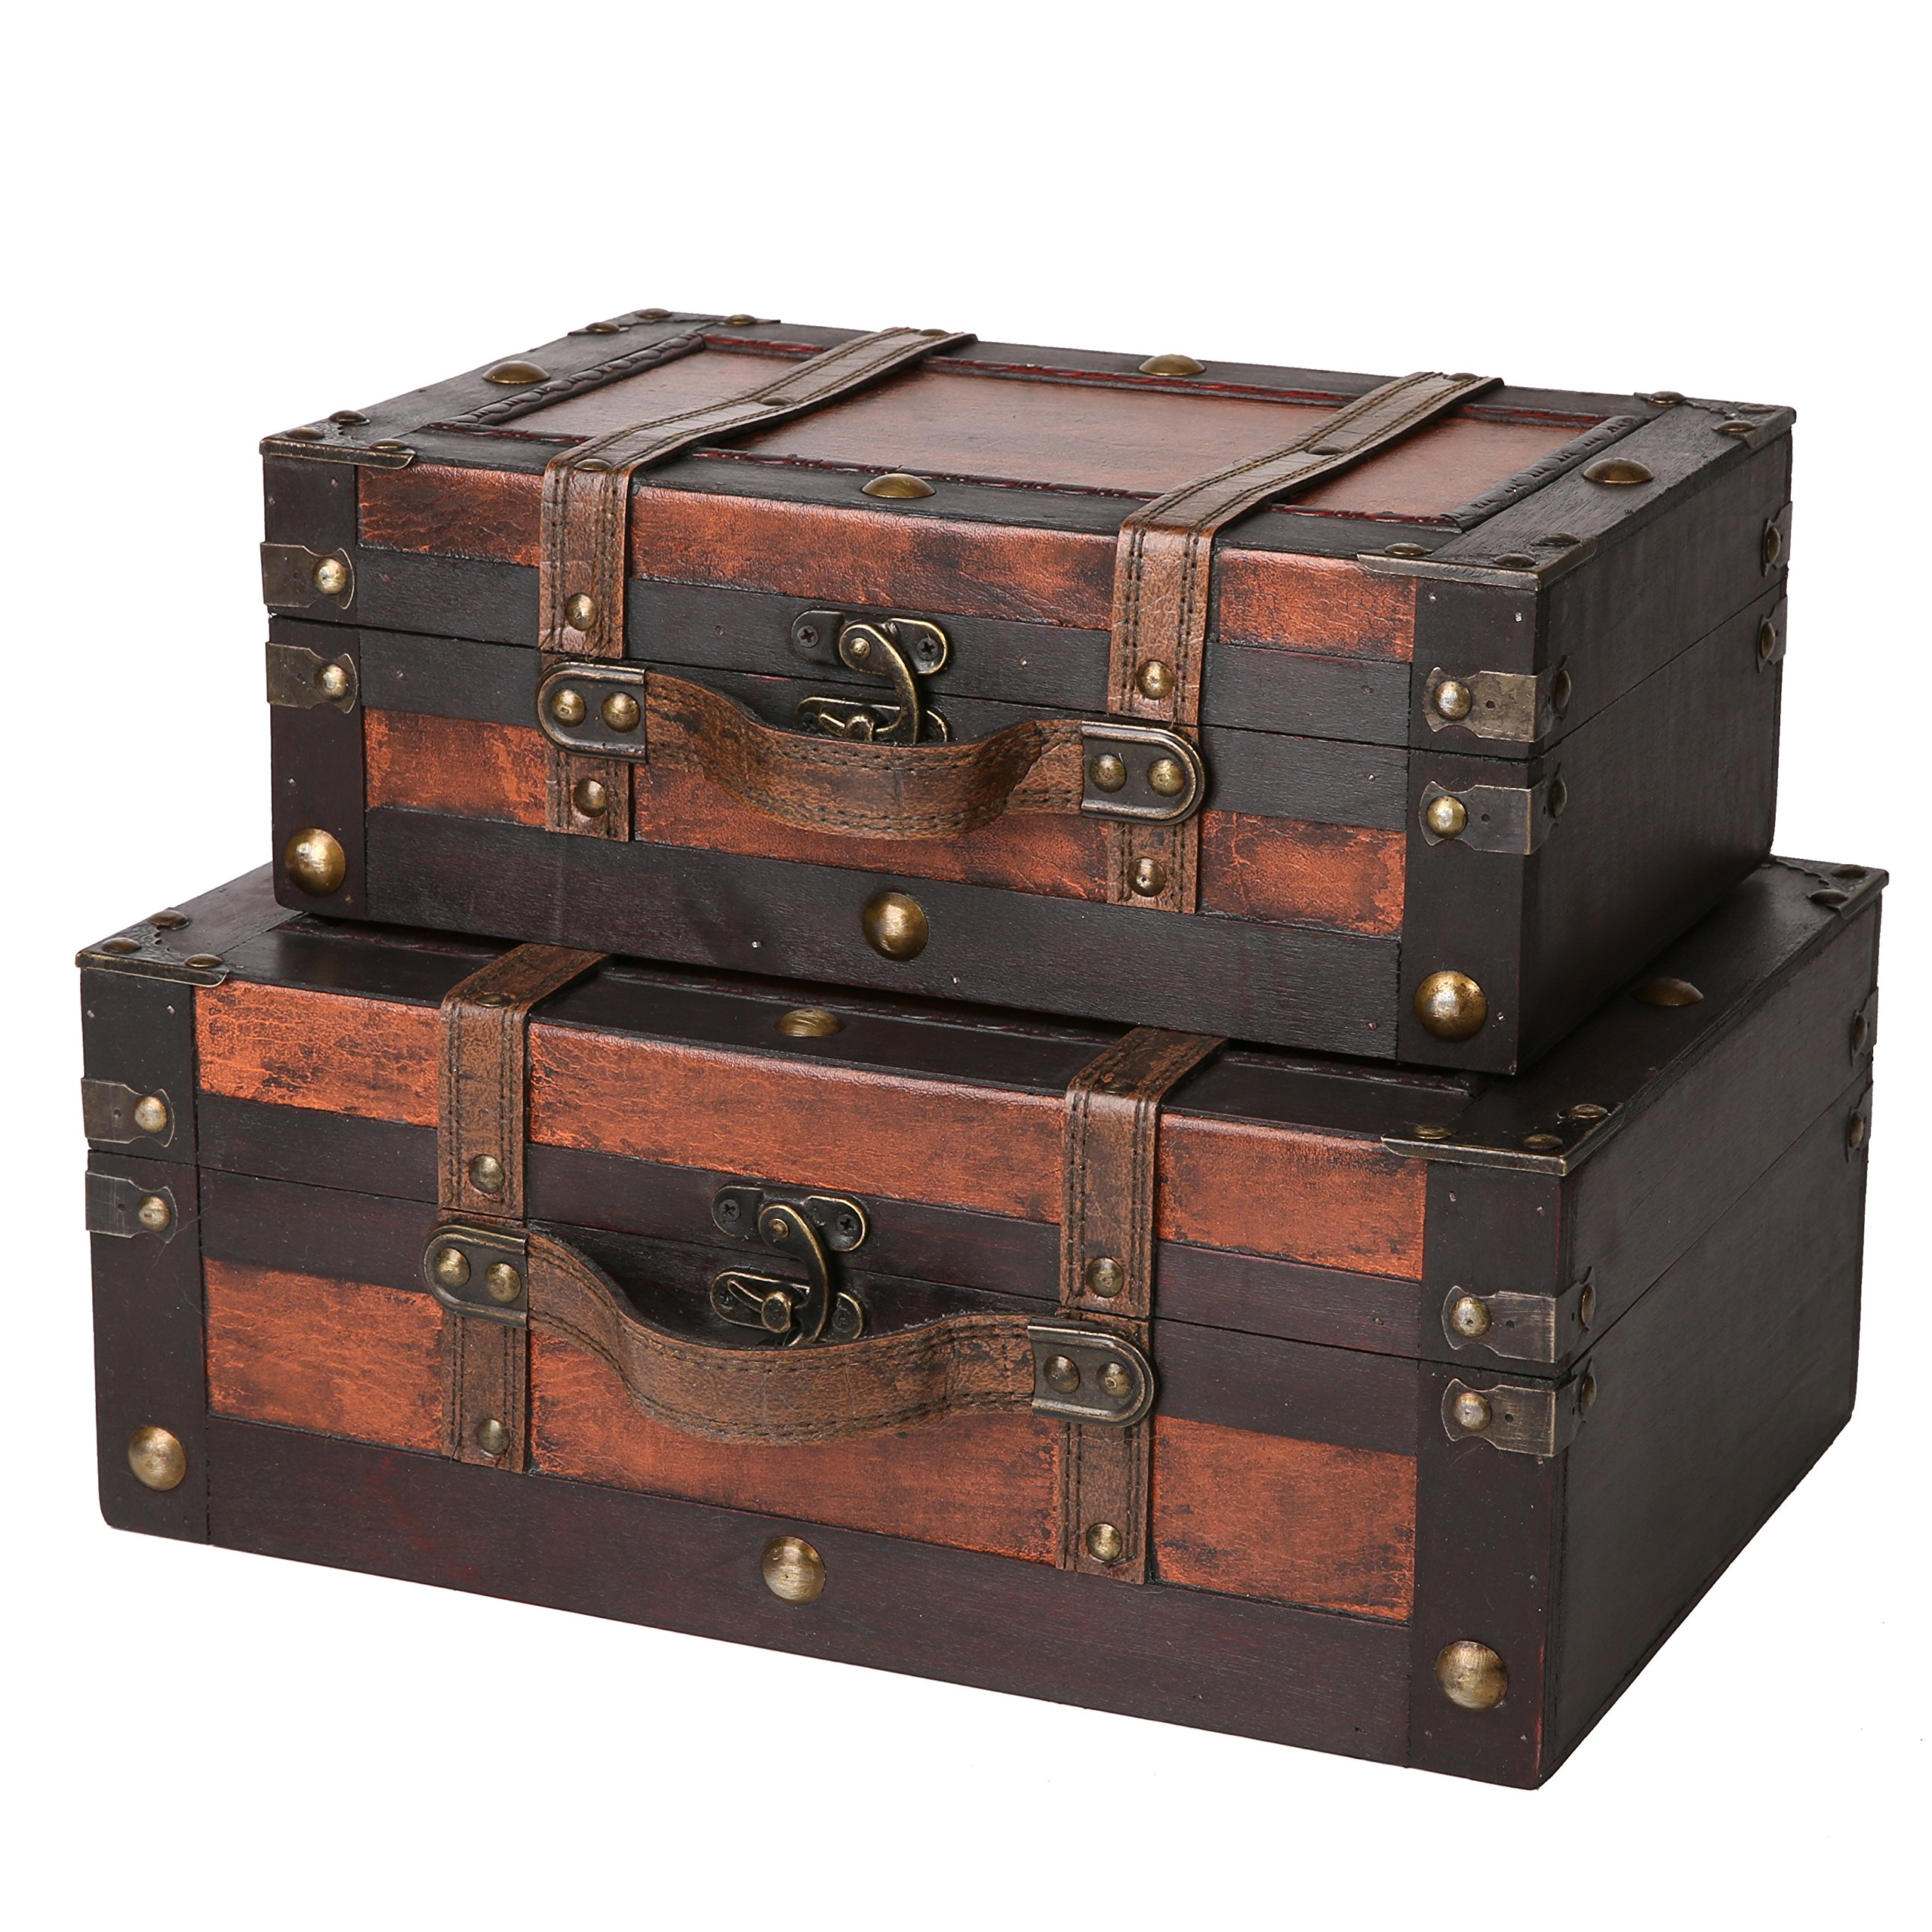 SLPR Crawford Wooden Trunk with Straps (Set of 2, Wine Color) | Old-Fashioned Antique Vintage Style Nesting Trunks for Shelf Home Decor Birthday Parties Wedding Decoration Displays Crafts by SLPR